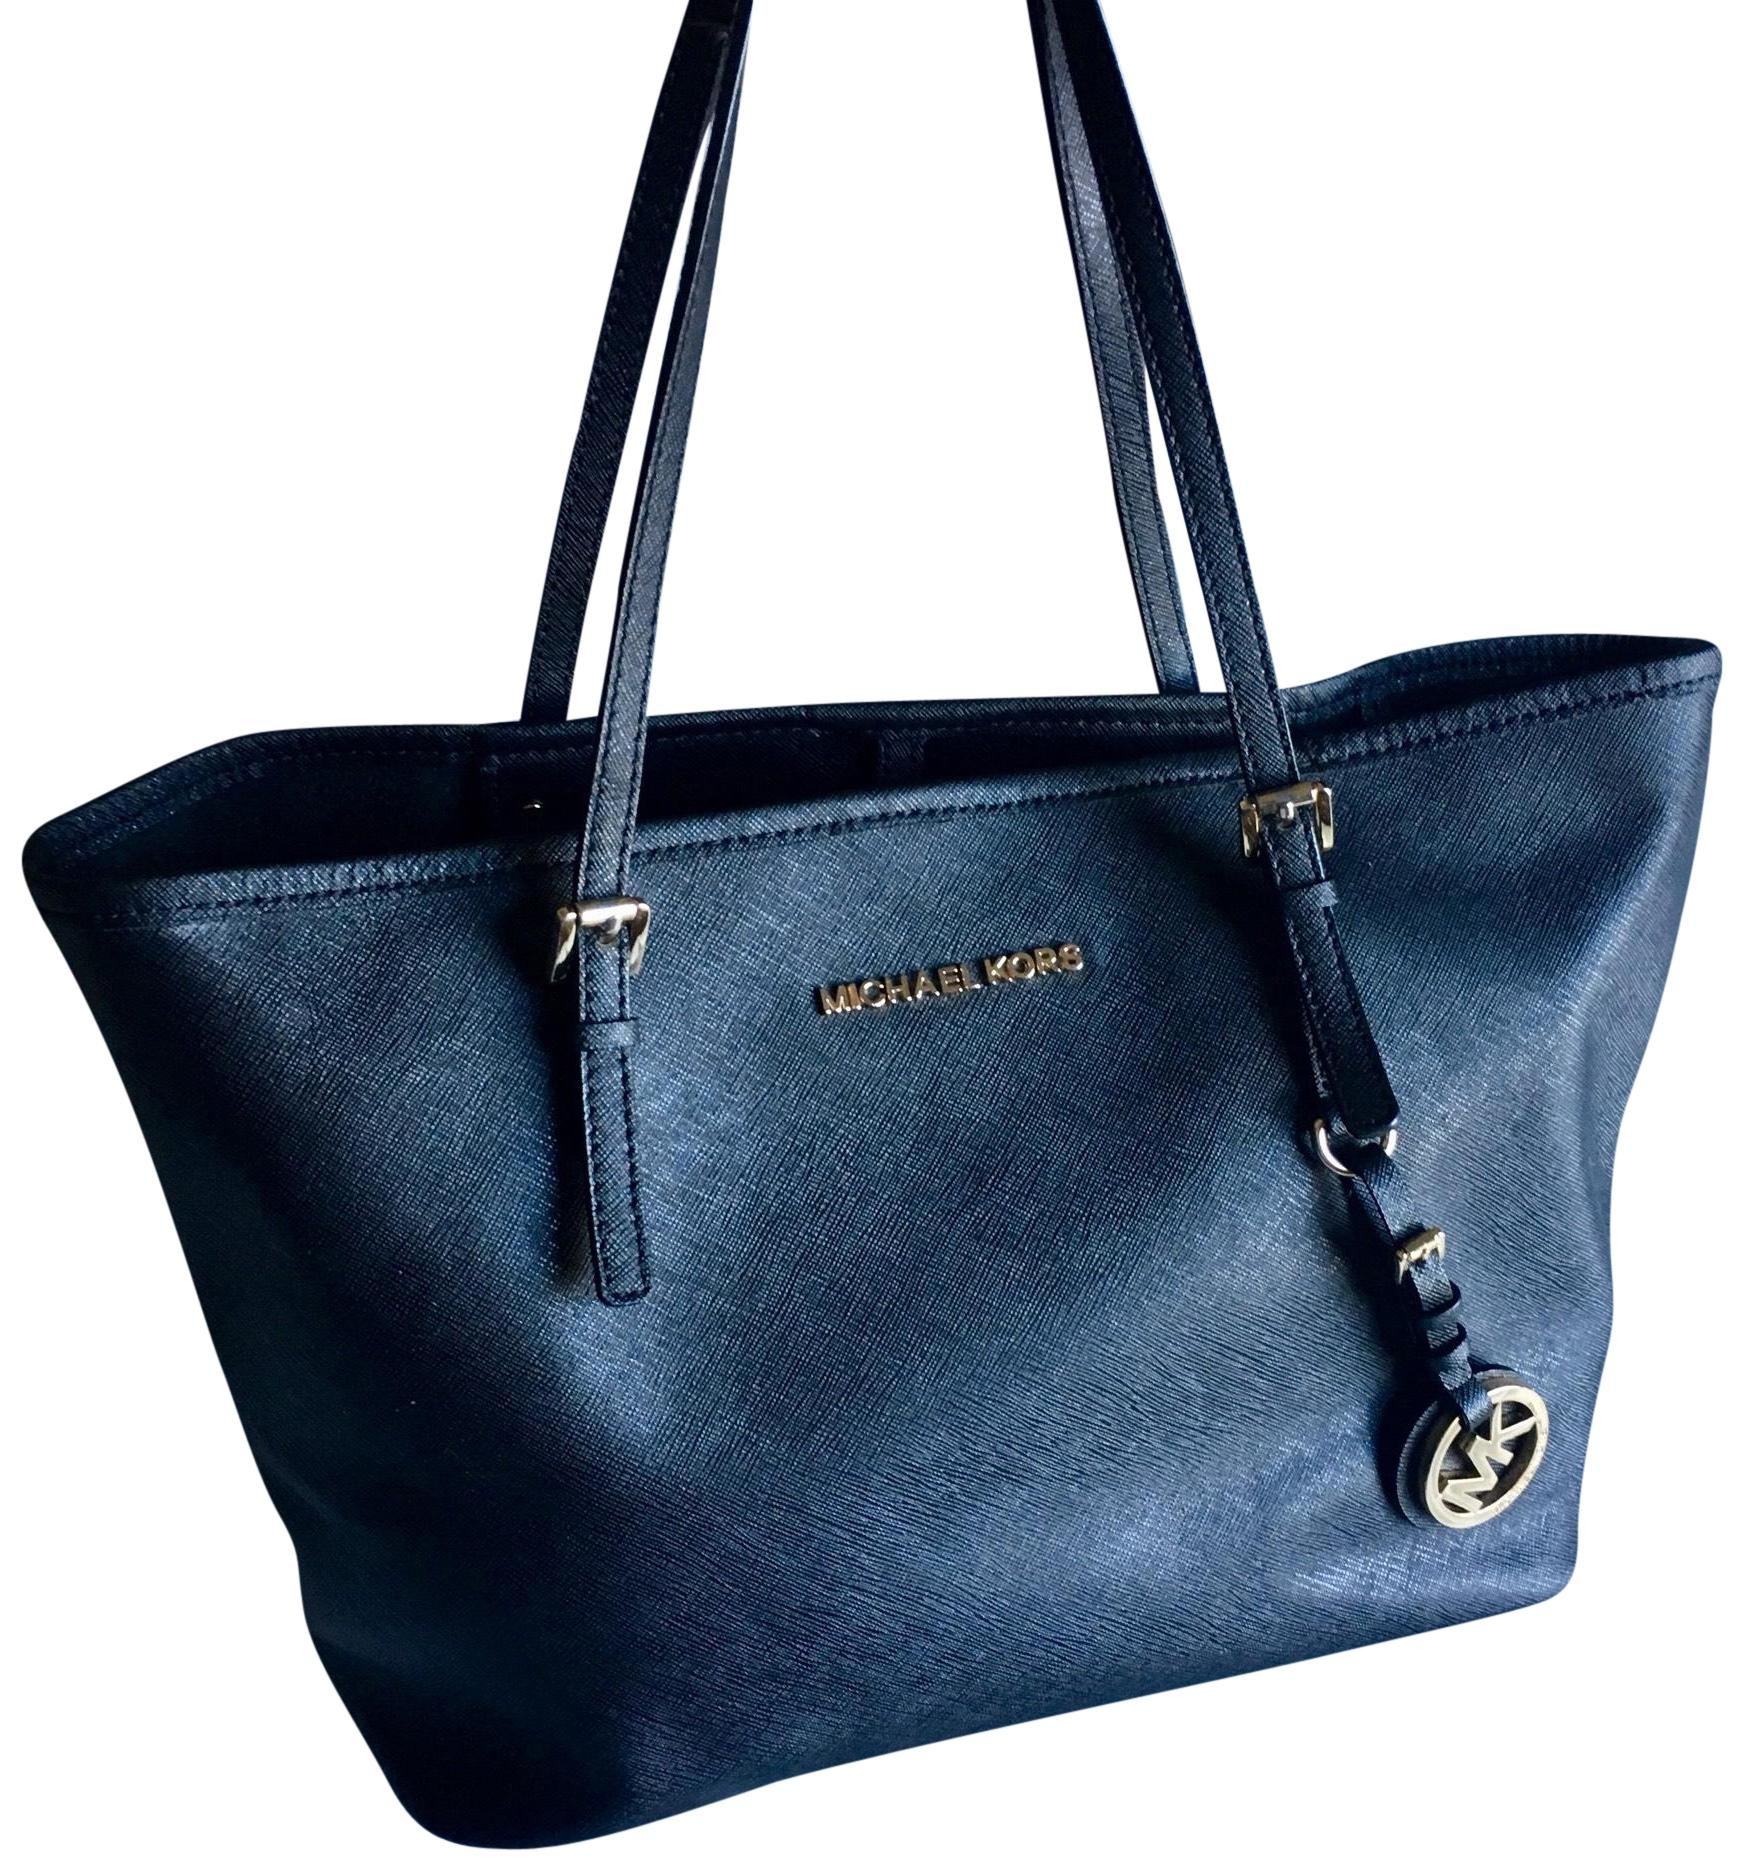 ddf26bcf1d ... spain michael kors tote in black 0b98a 400ab